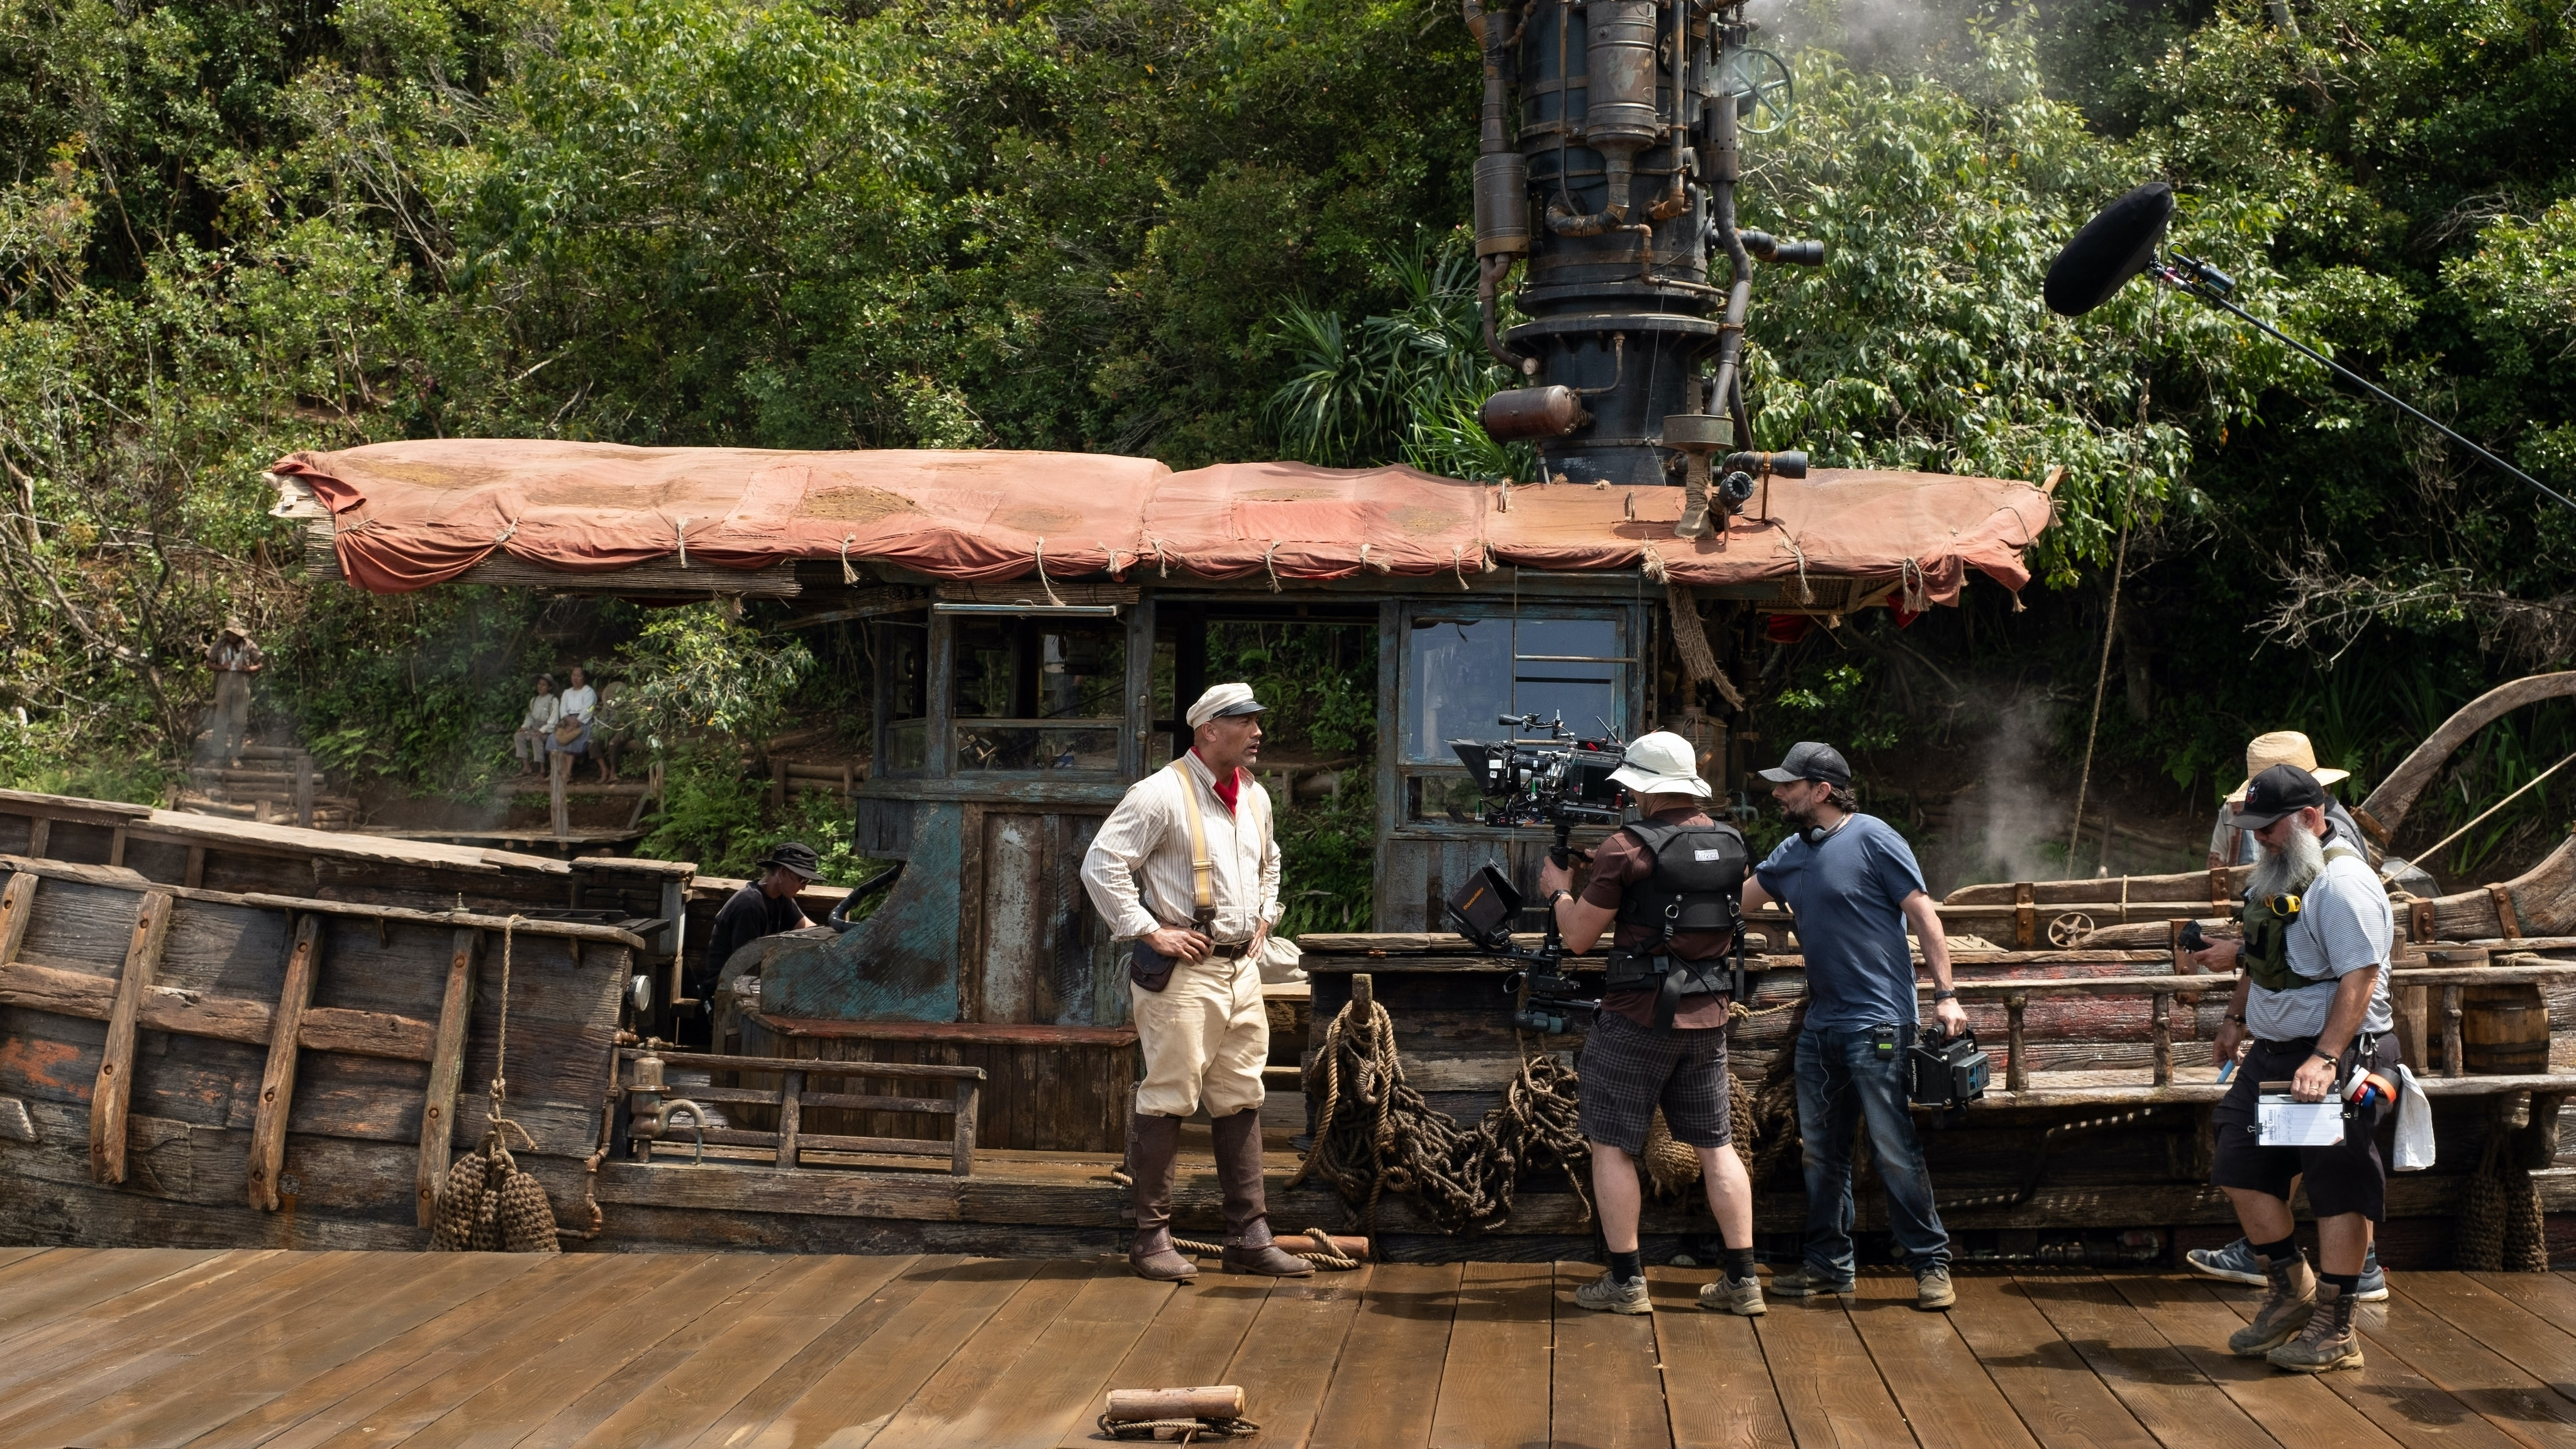 Dwayne Johnson and director Jaume Collet-Serra on the set of Disney's JUNGLE CRUISE. Photo by Frank Masi. © 2021 Disney Enterprises, Inc. All Rights Reserved.